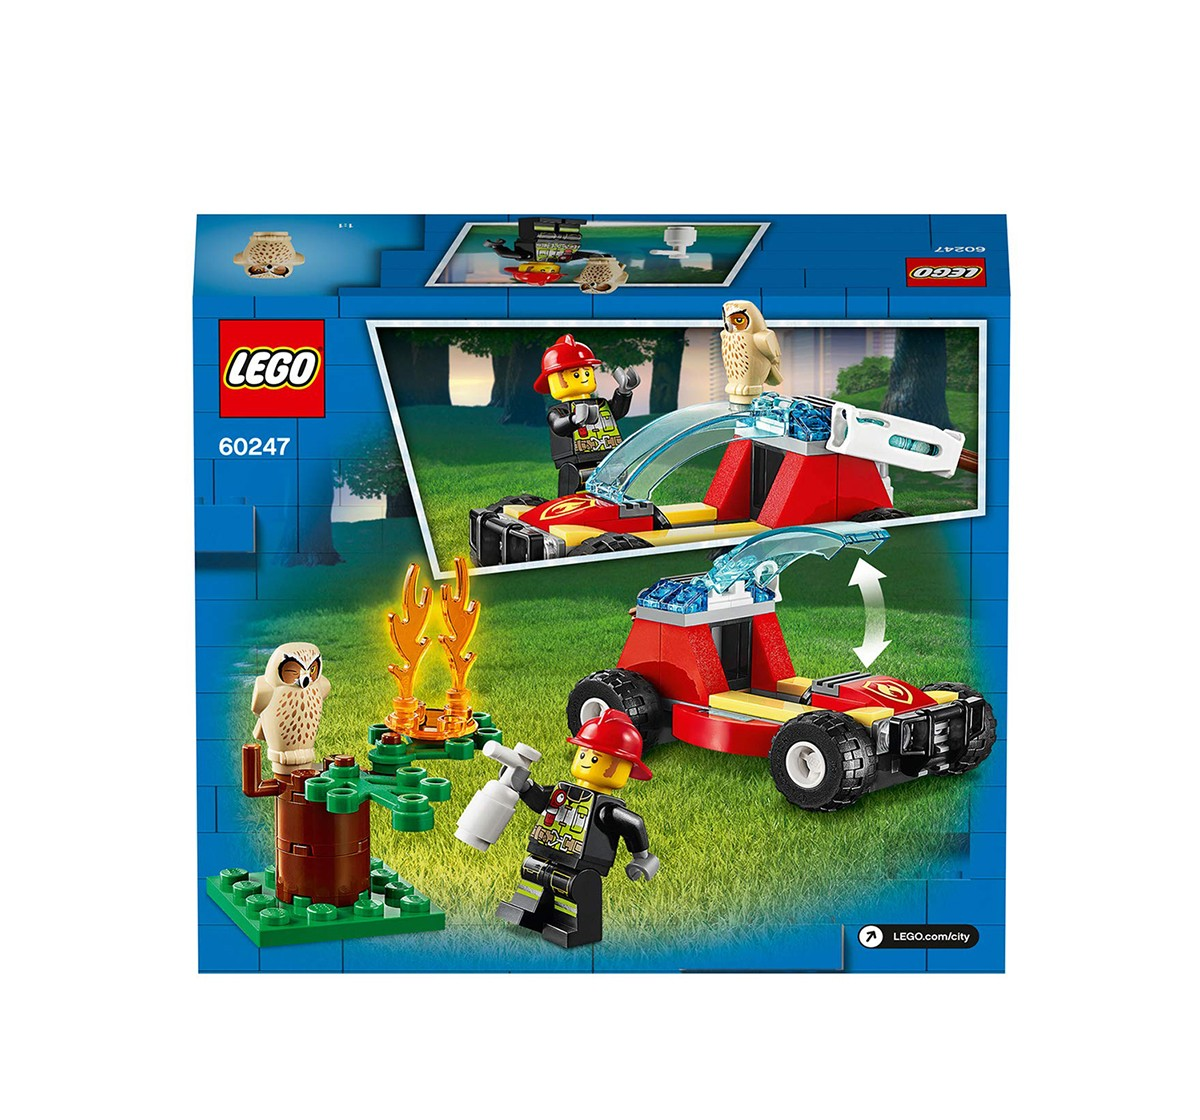 Lego 60247 Forest Fire  Blocks for Kids age 5Y+